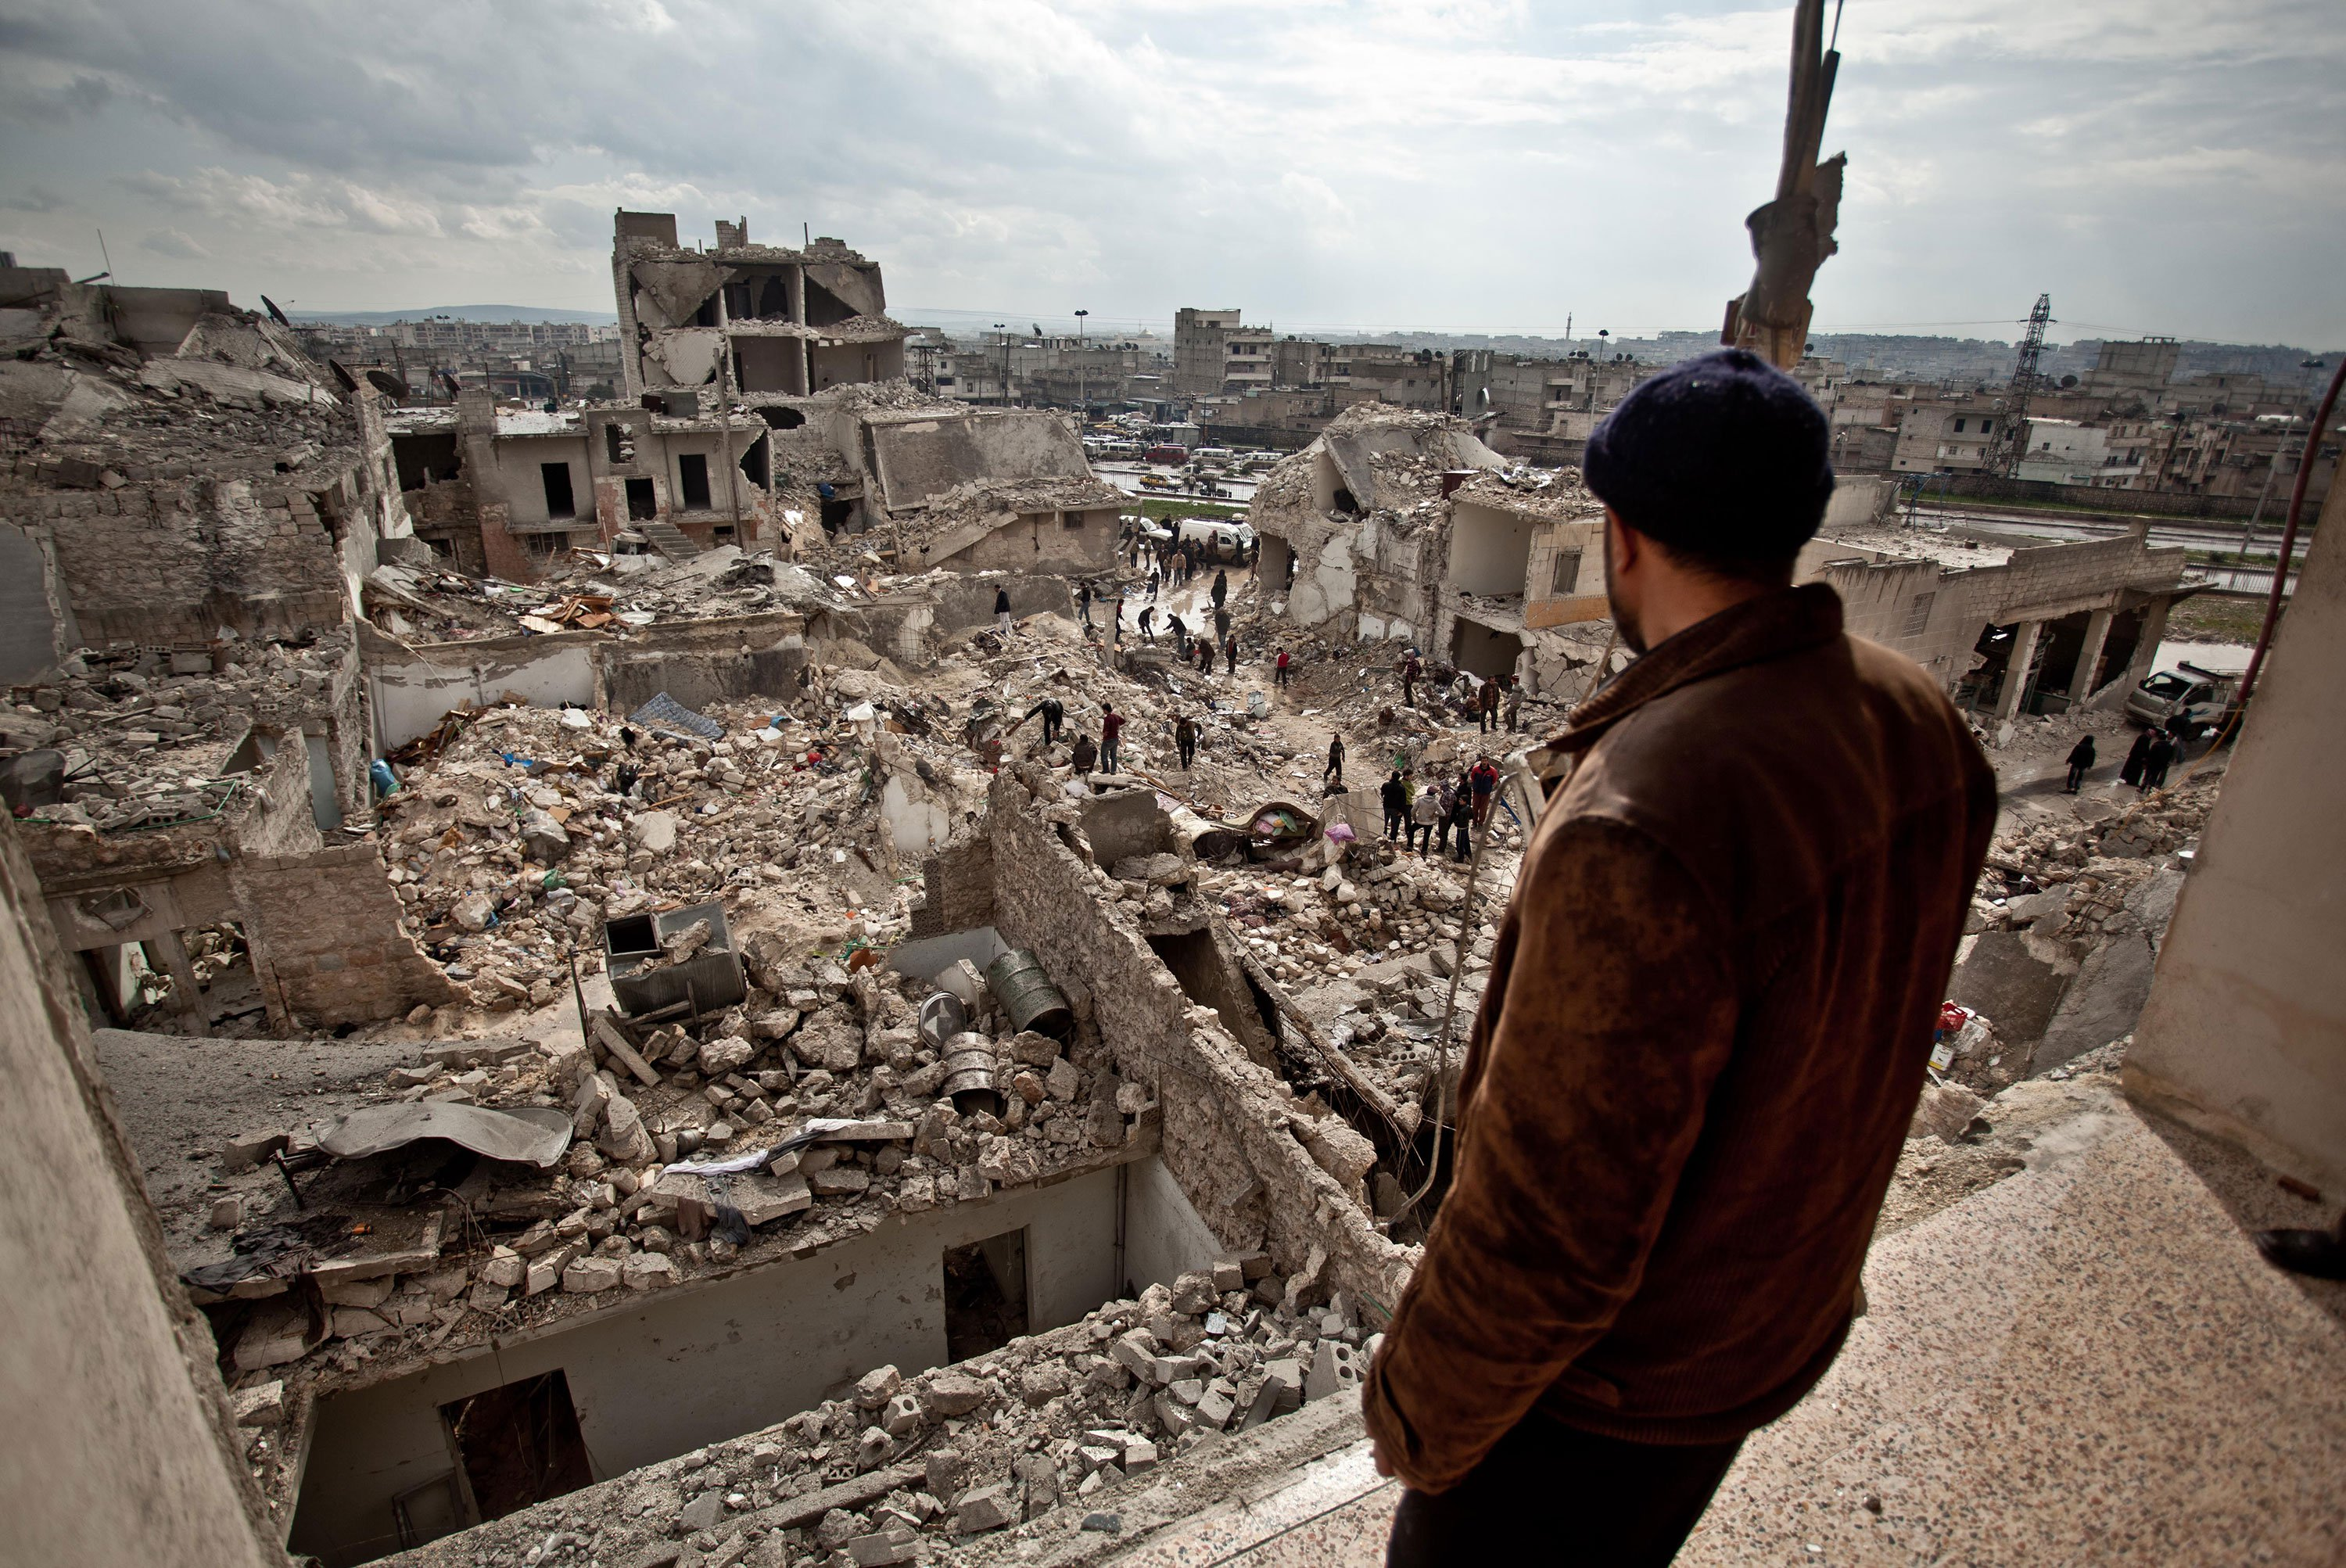 The view over Aleppo, Syria, shows a neighborhood destroyed by war. The conflict there has displaced 11 million people.